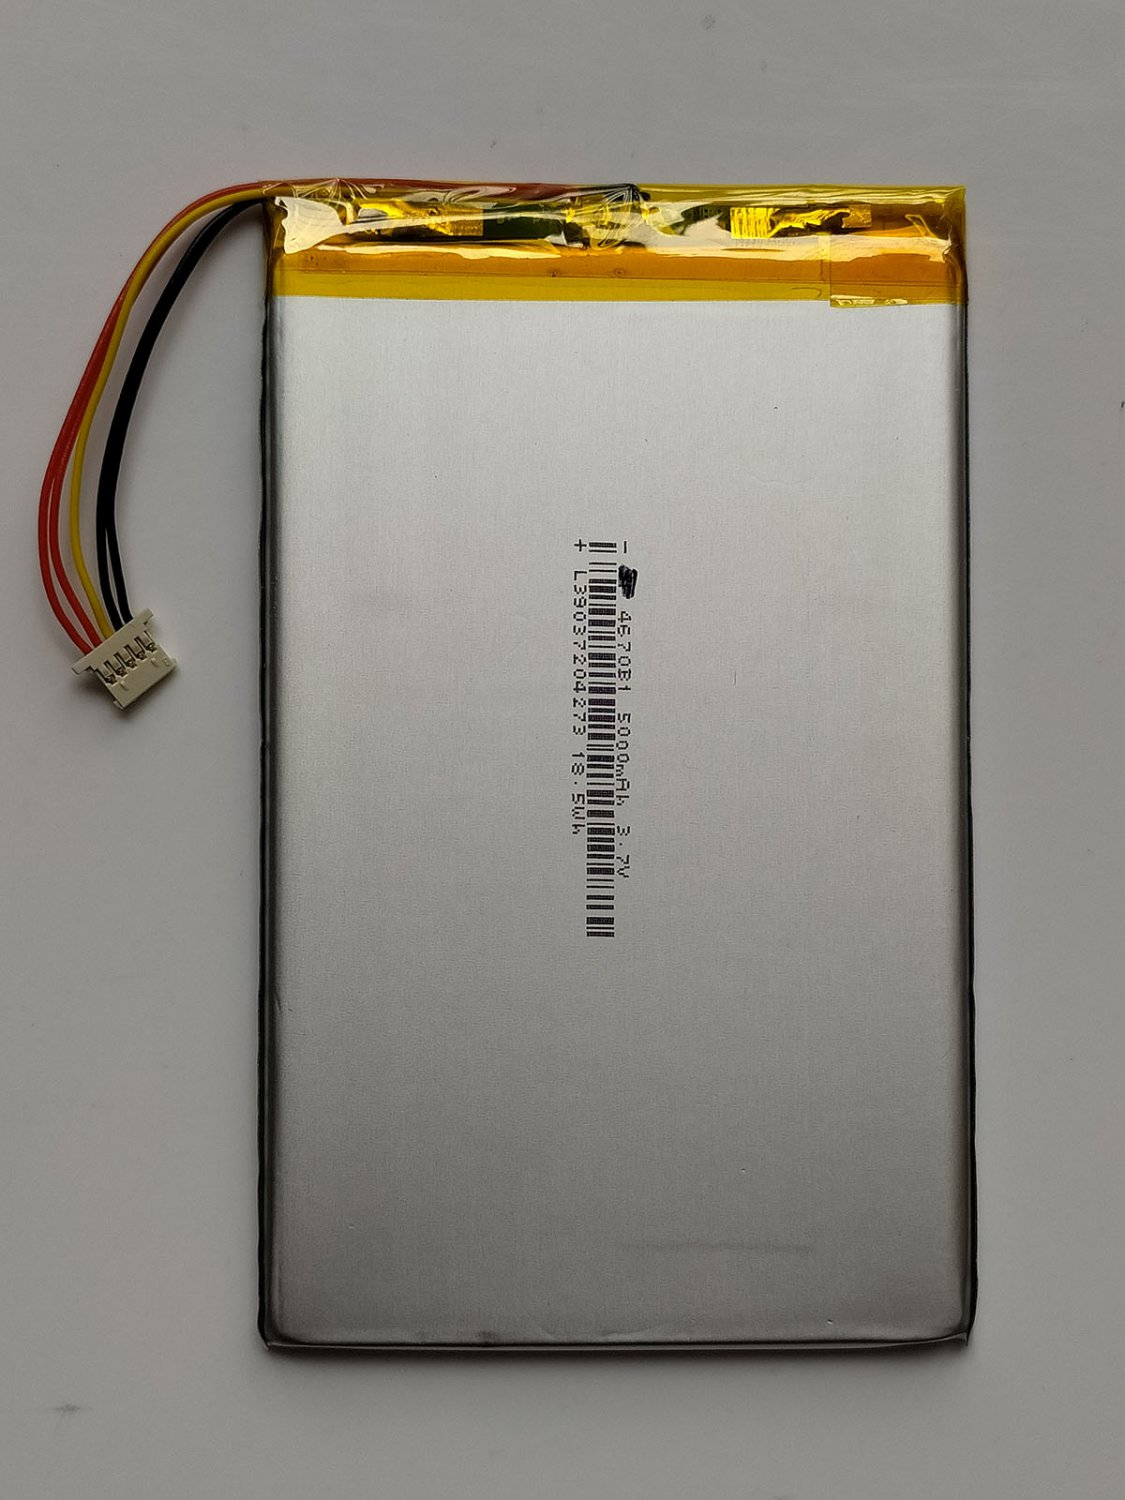 MLP5070111 Battery Replacement For Autel MaxiSys MS906 MS905 5000mAh 3.7V 18.5Wh